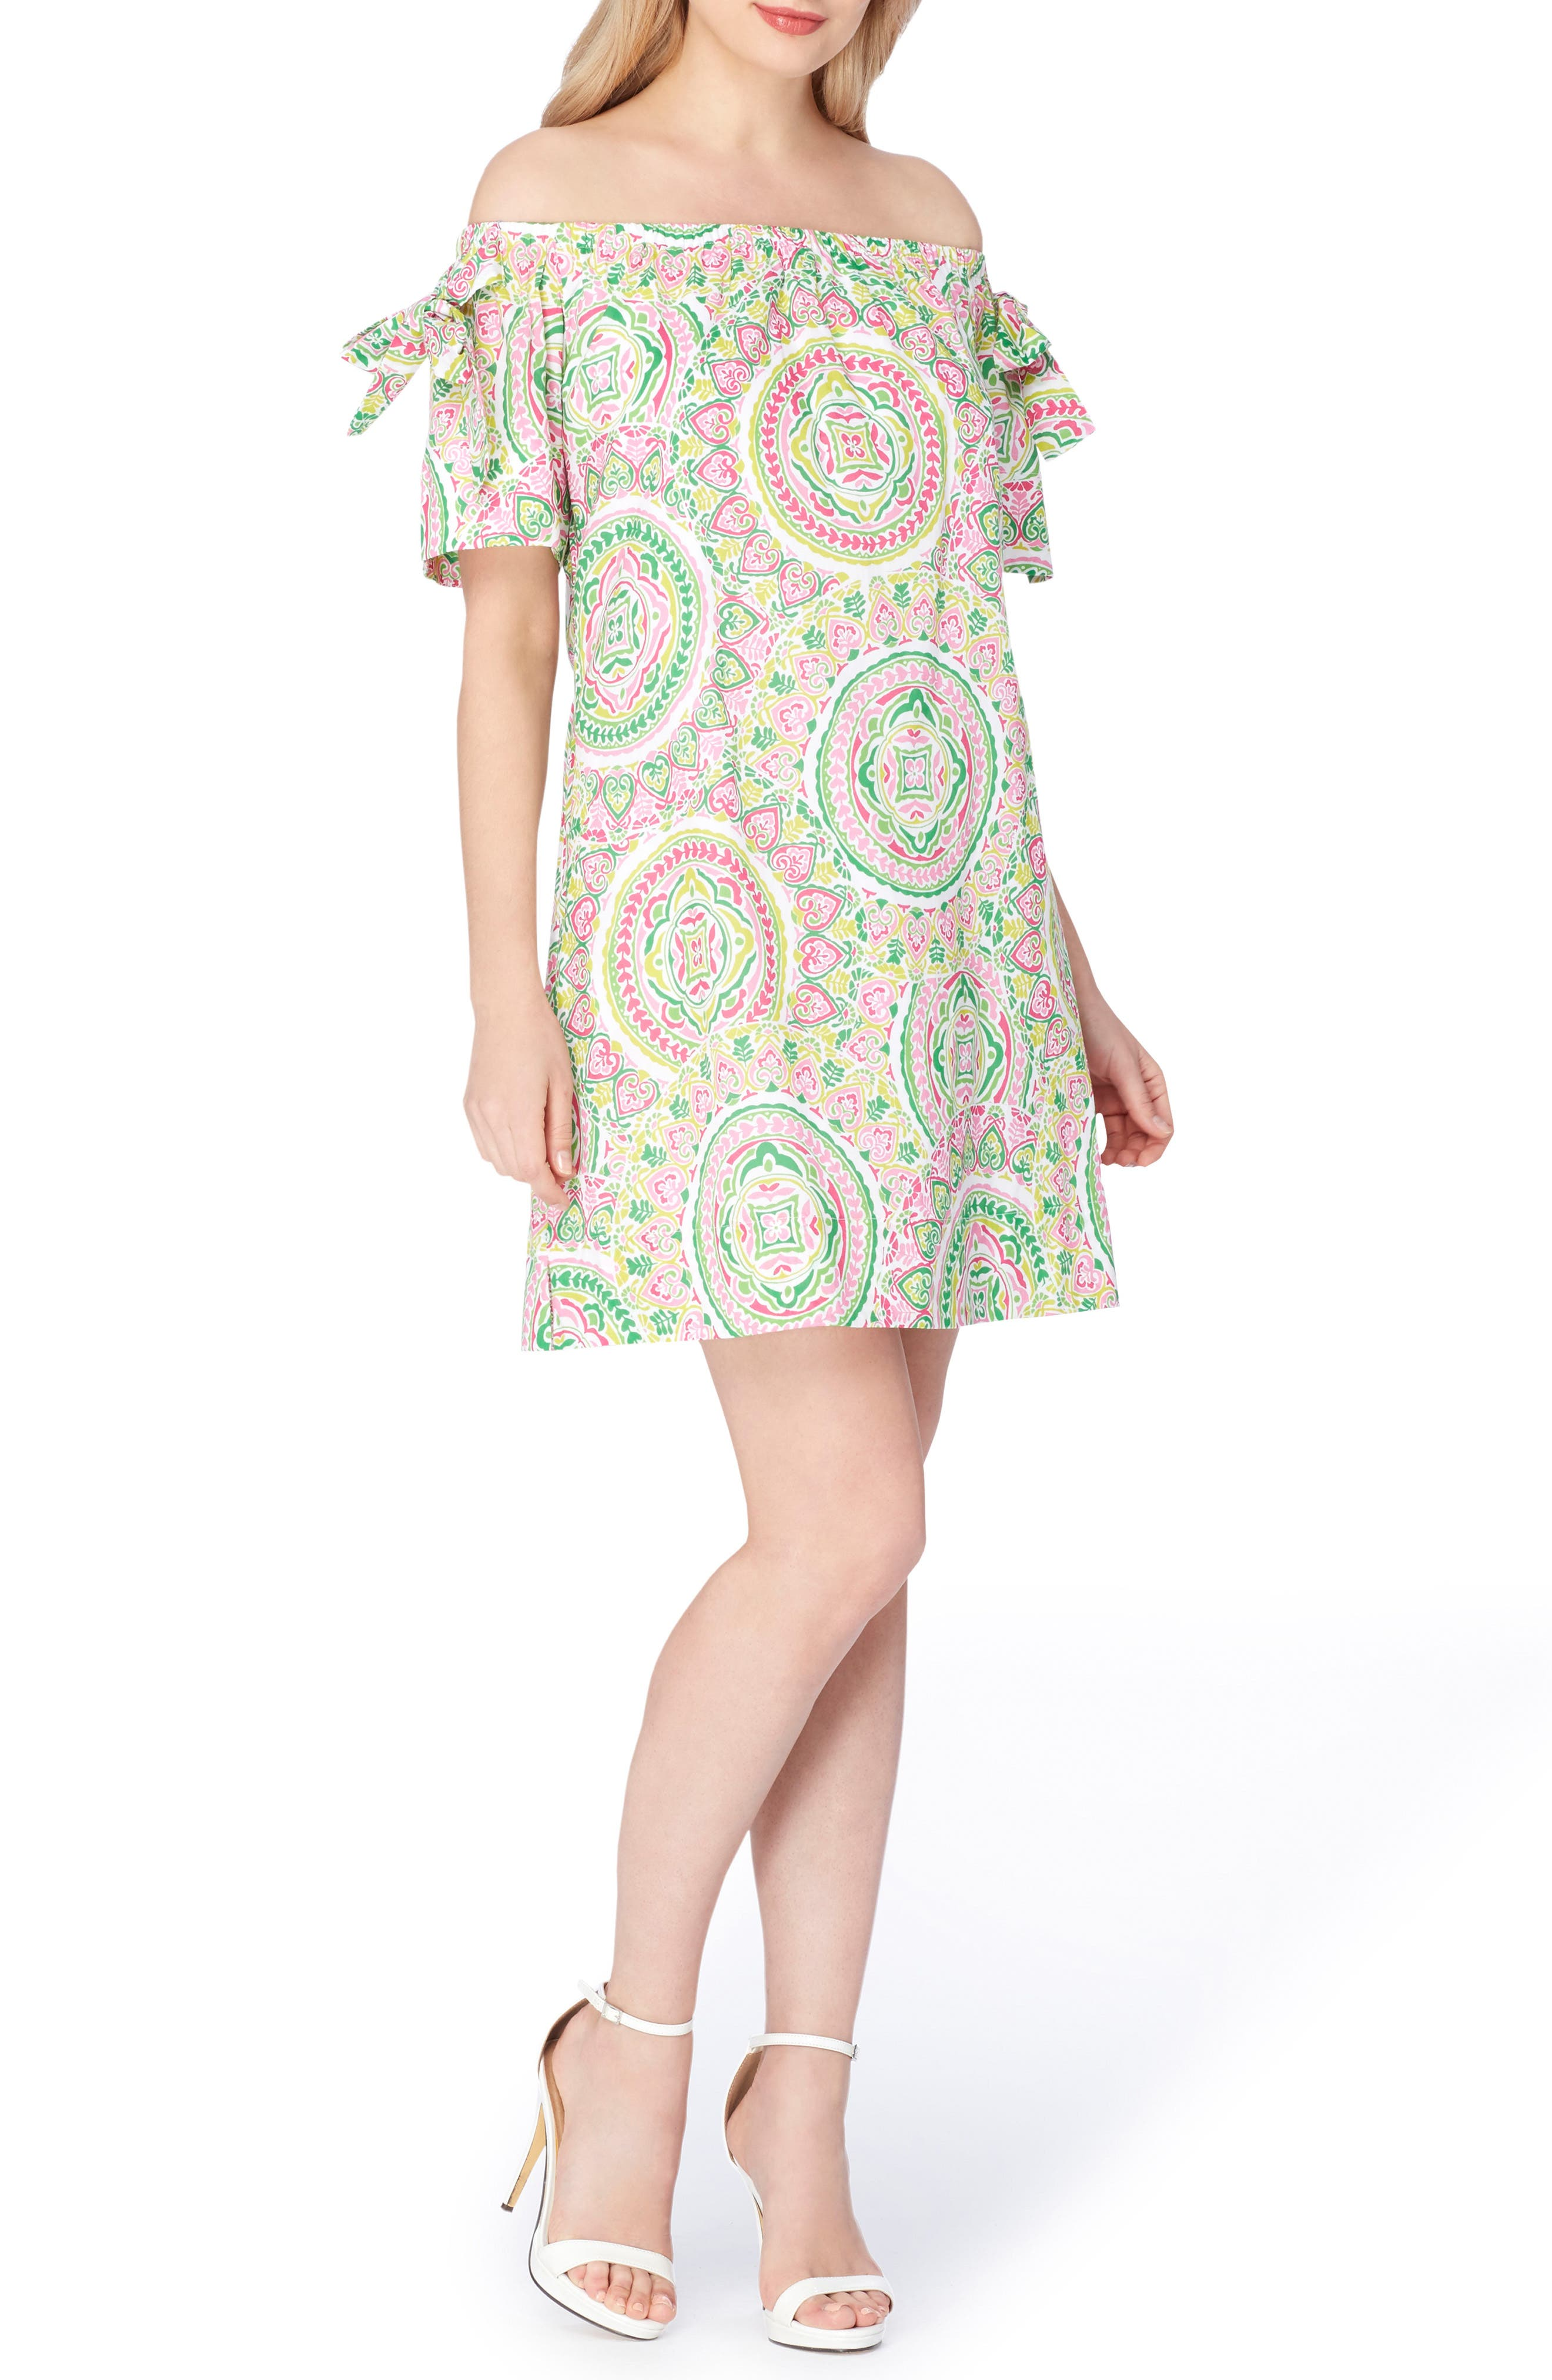 Off the Shoulder Shift Dress,                         Main,                         color, White/ Peony/ Green